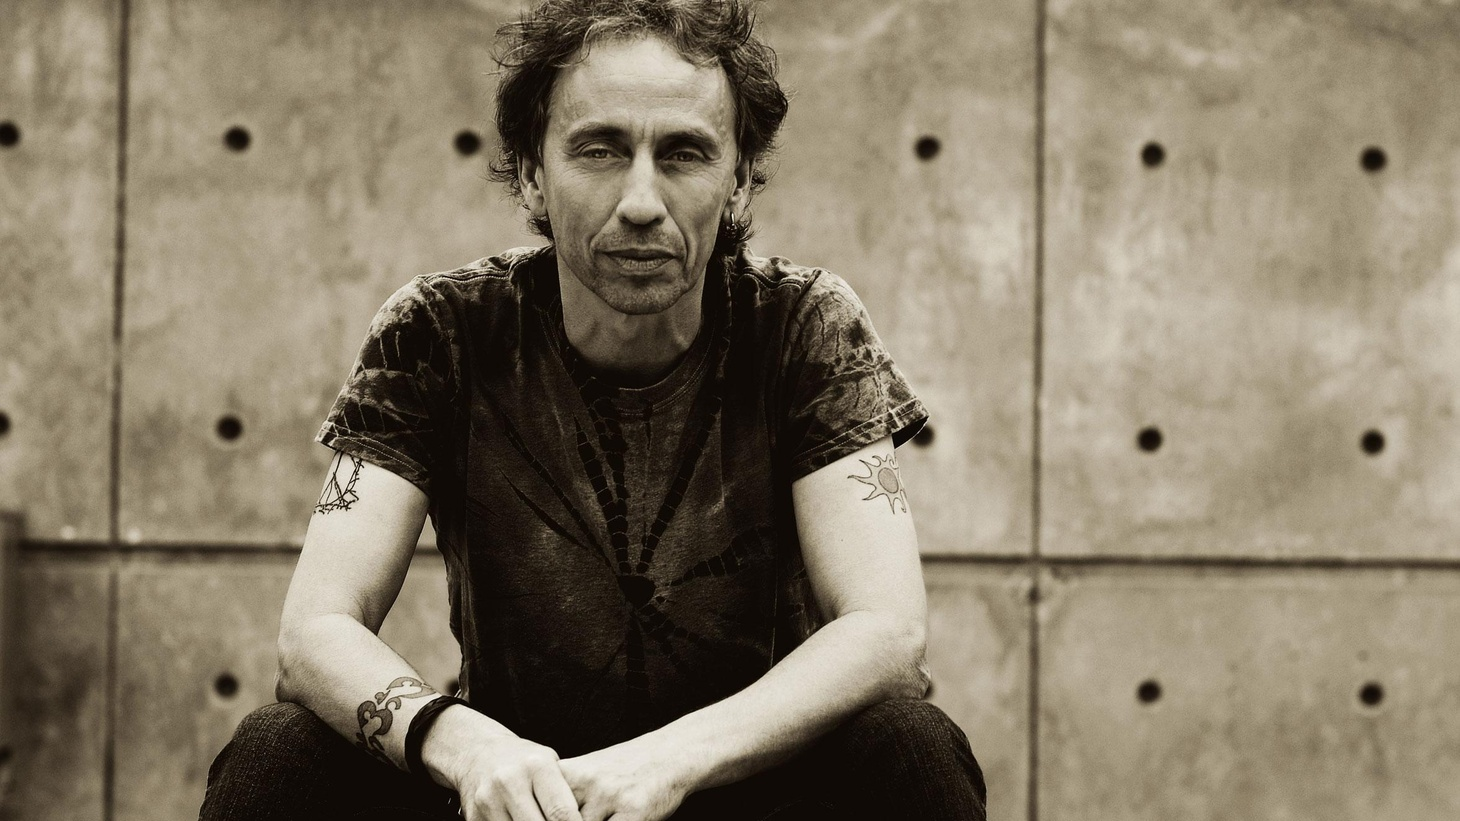 On this edition of Sounds Eclectic, host Nic Harcourt plays new, upcoming and  recent releases from Ry Cooder. Plus a live in-studio performance from Americana roots singer Ramsay Midwood and his band, all this and much more on Sounds Eclectic.